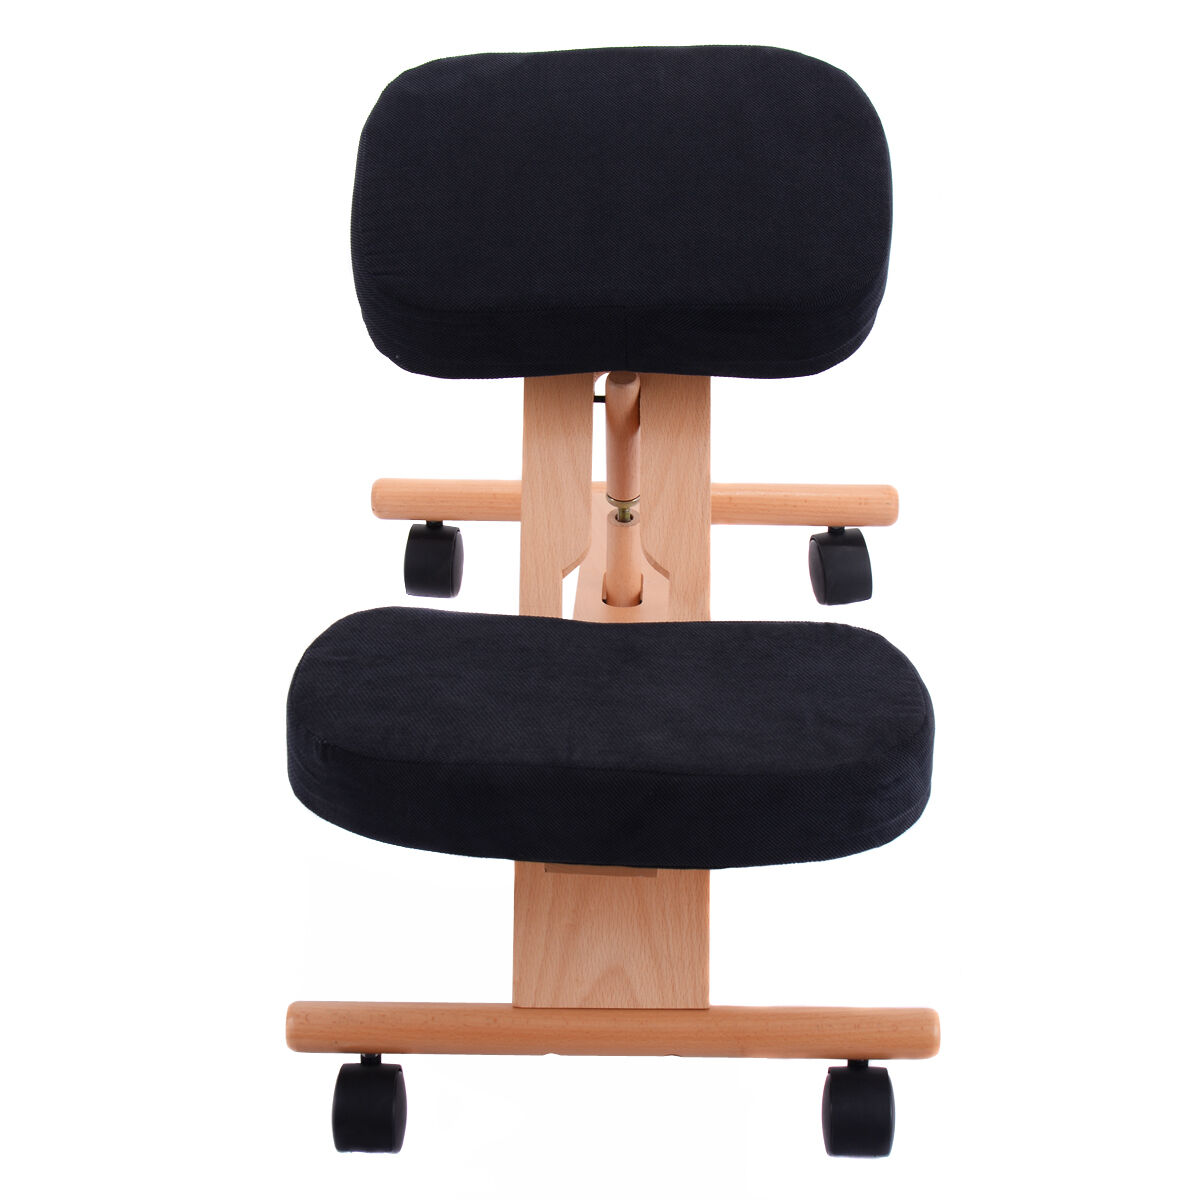 Wooden Kneeling Chair Orthopaedic Stool Ergonomic Posture